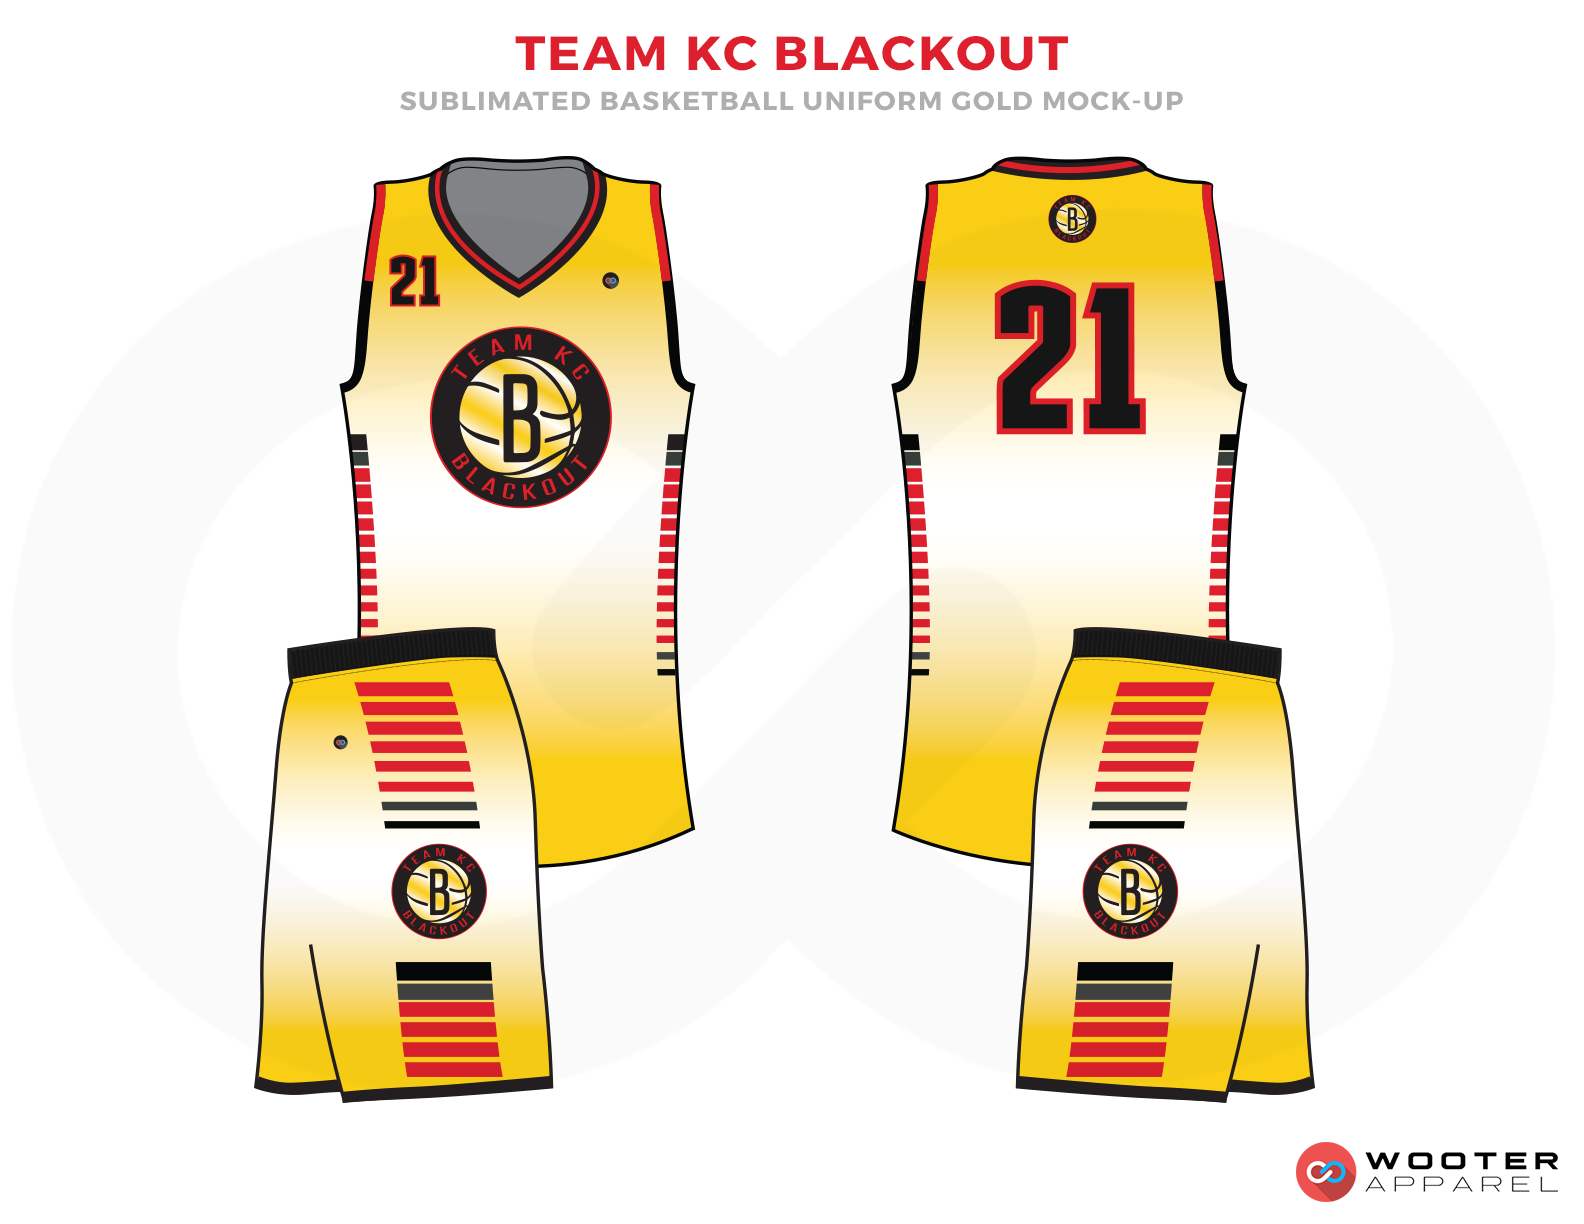 TEAM KC BLACKOUT Yellow Black Red Blue Grey and White Basketball Uniforms, Jersey and Shorts